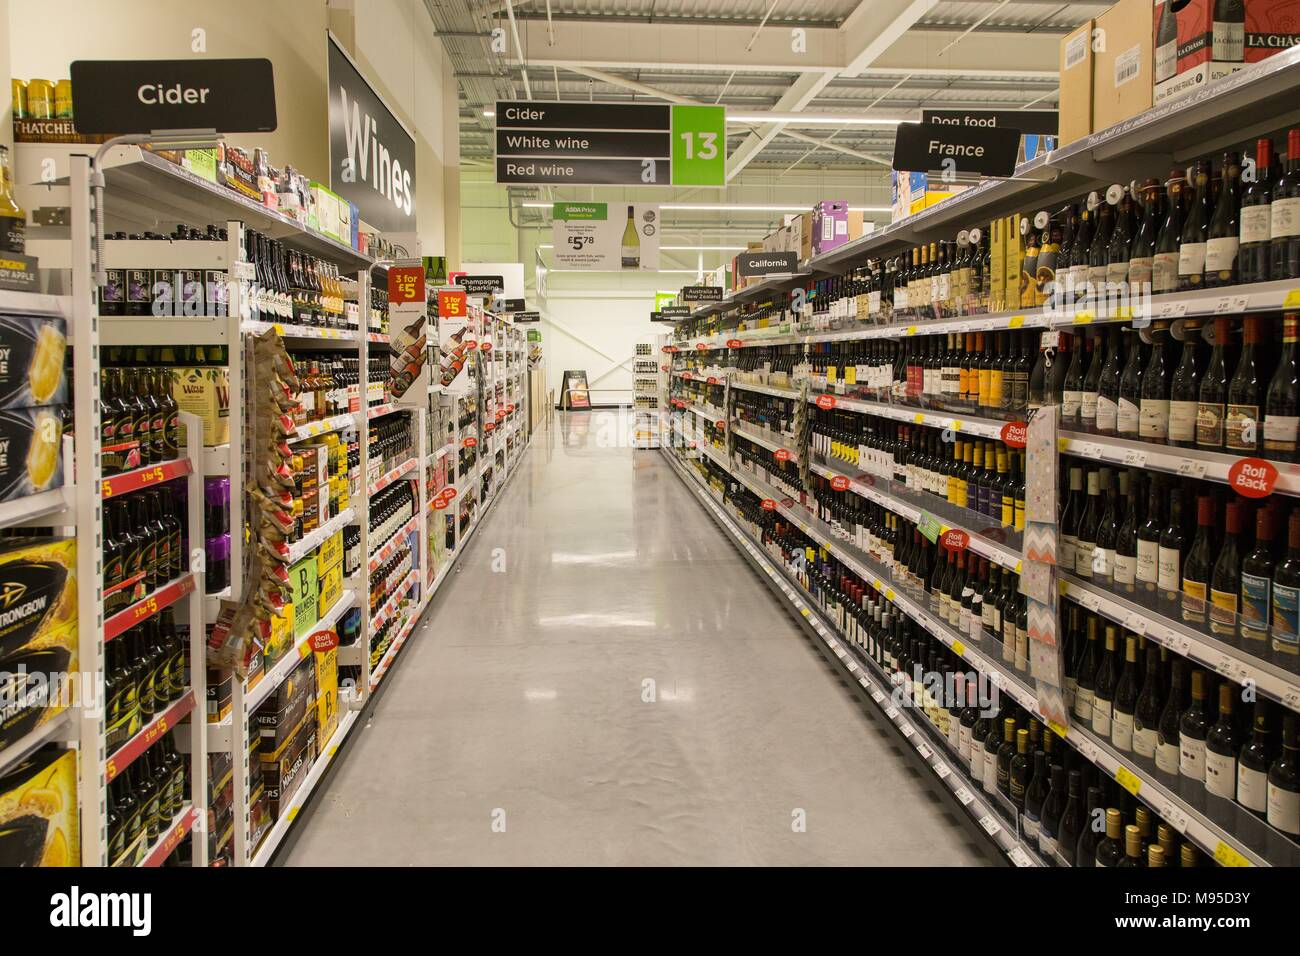 Wine and spirits on full shelves in an Asda supermarket. - Stock Image